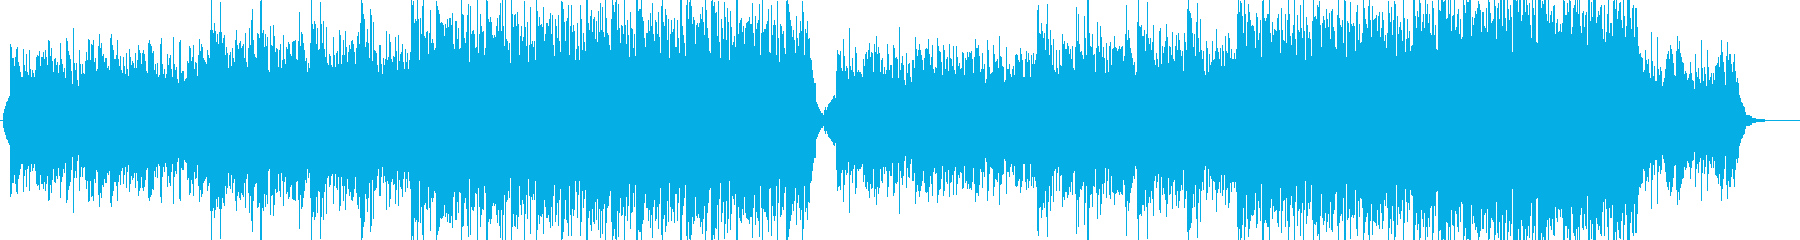 BGM for enterprises with a magnificent image's reproduced waveform